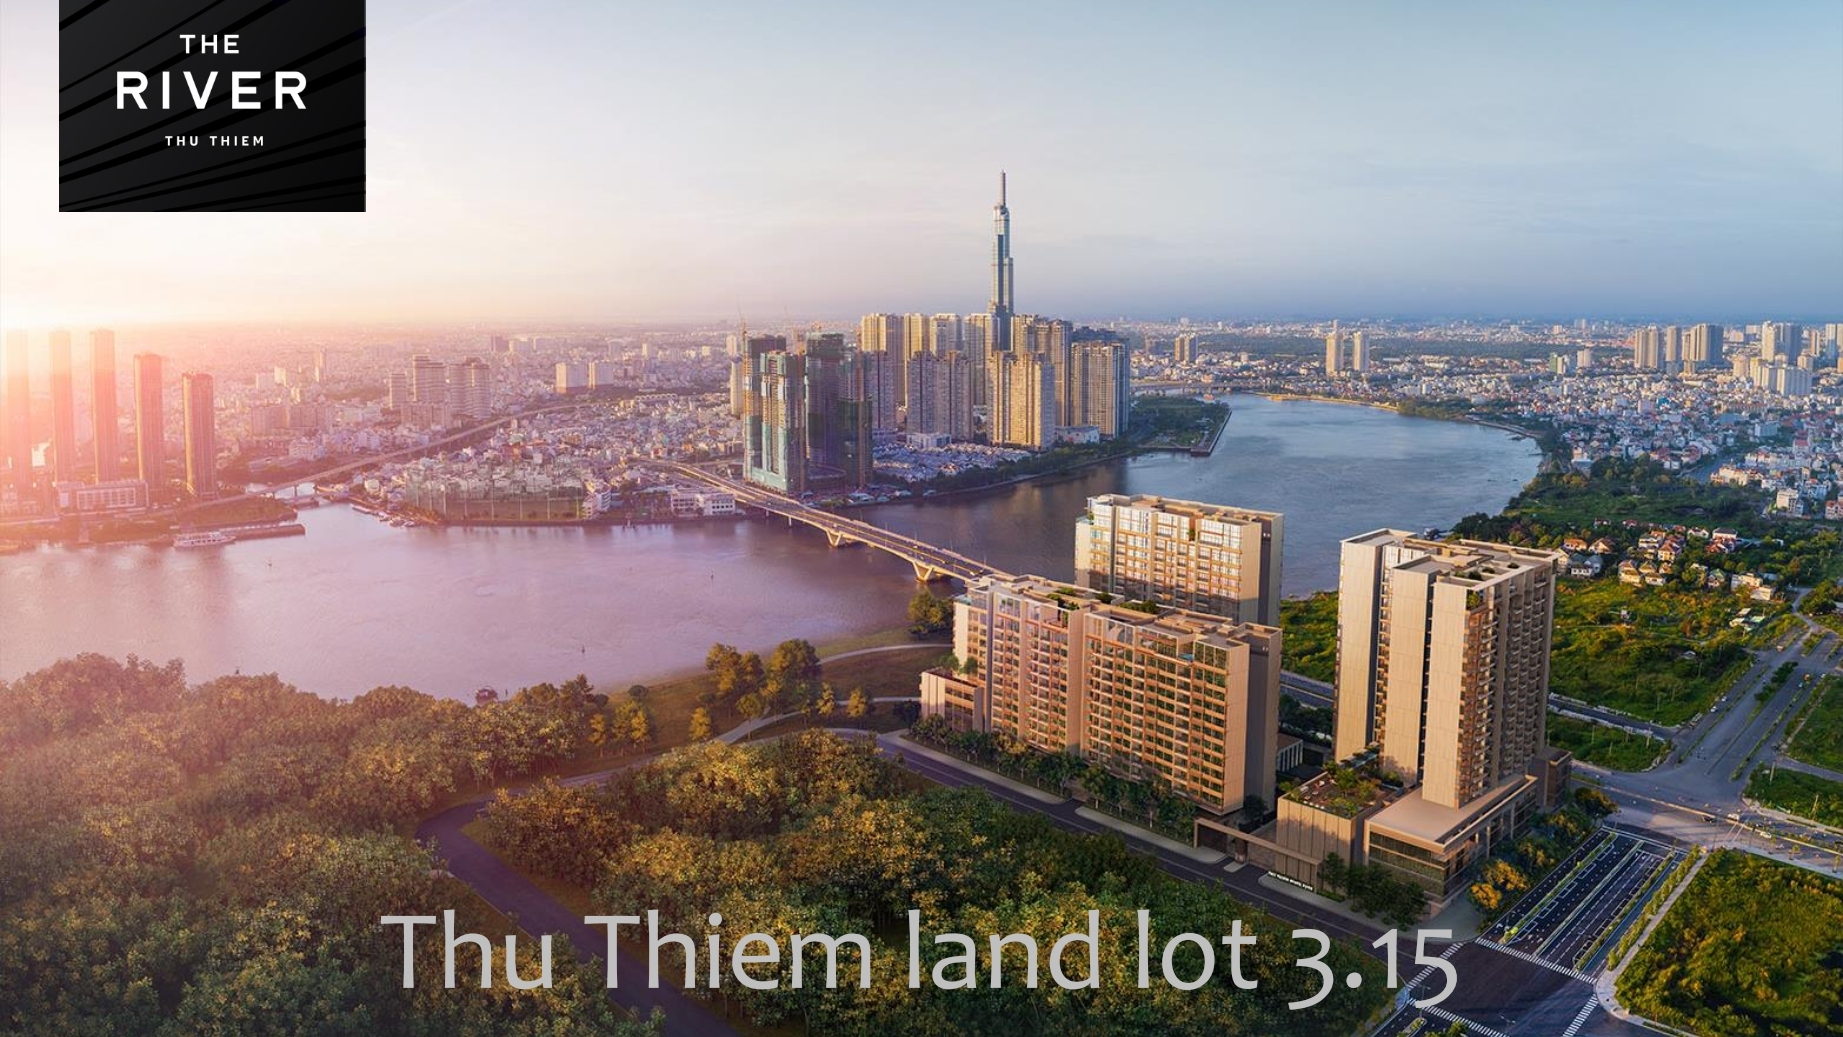 The River Thu Thiem Project will open for sale in July 2020